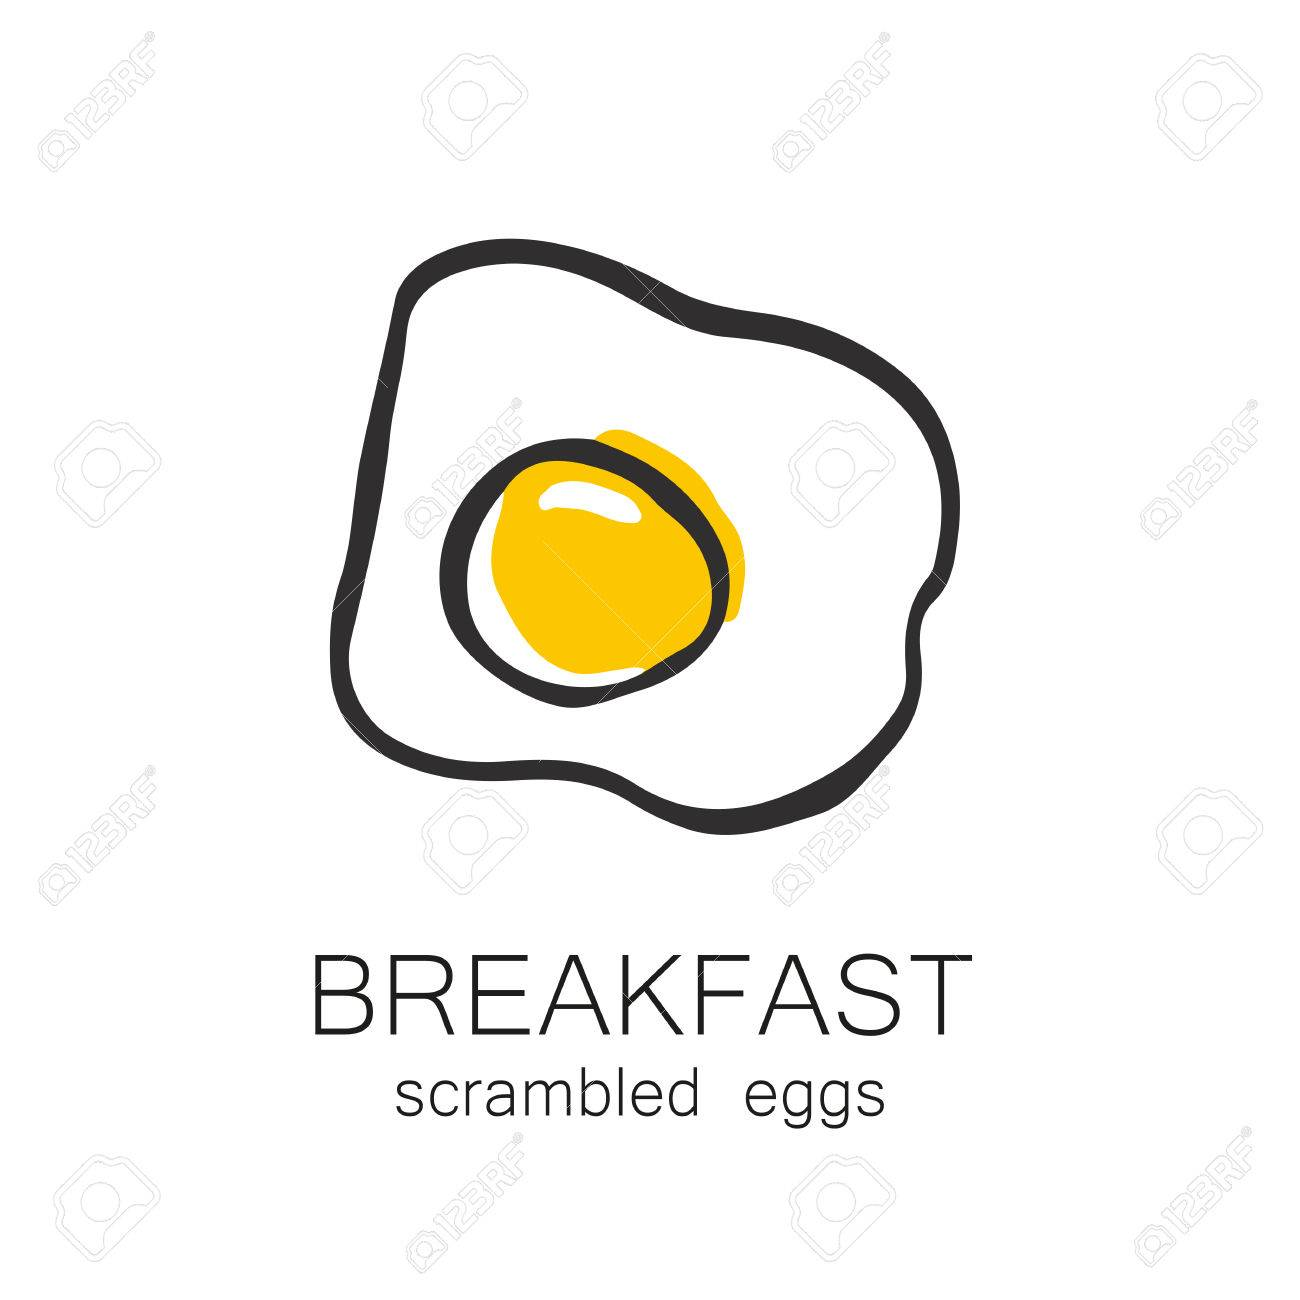 Breakfast Fried Or Scrambled Eggs Template Design For The